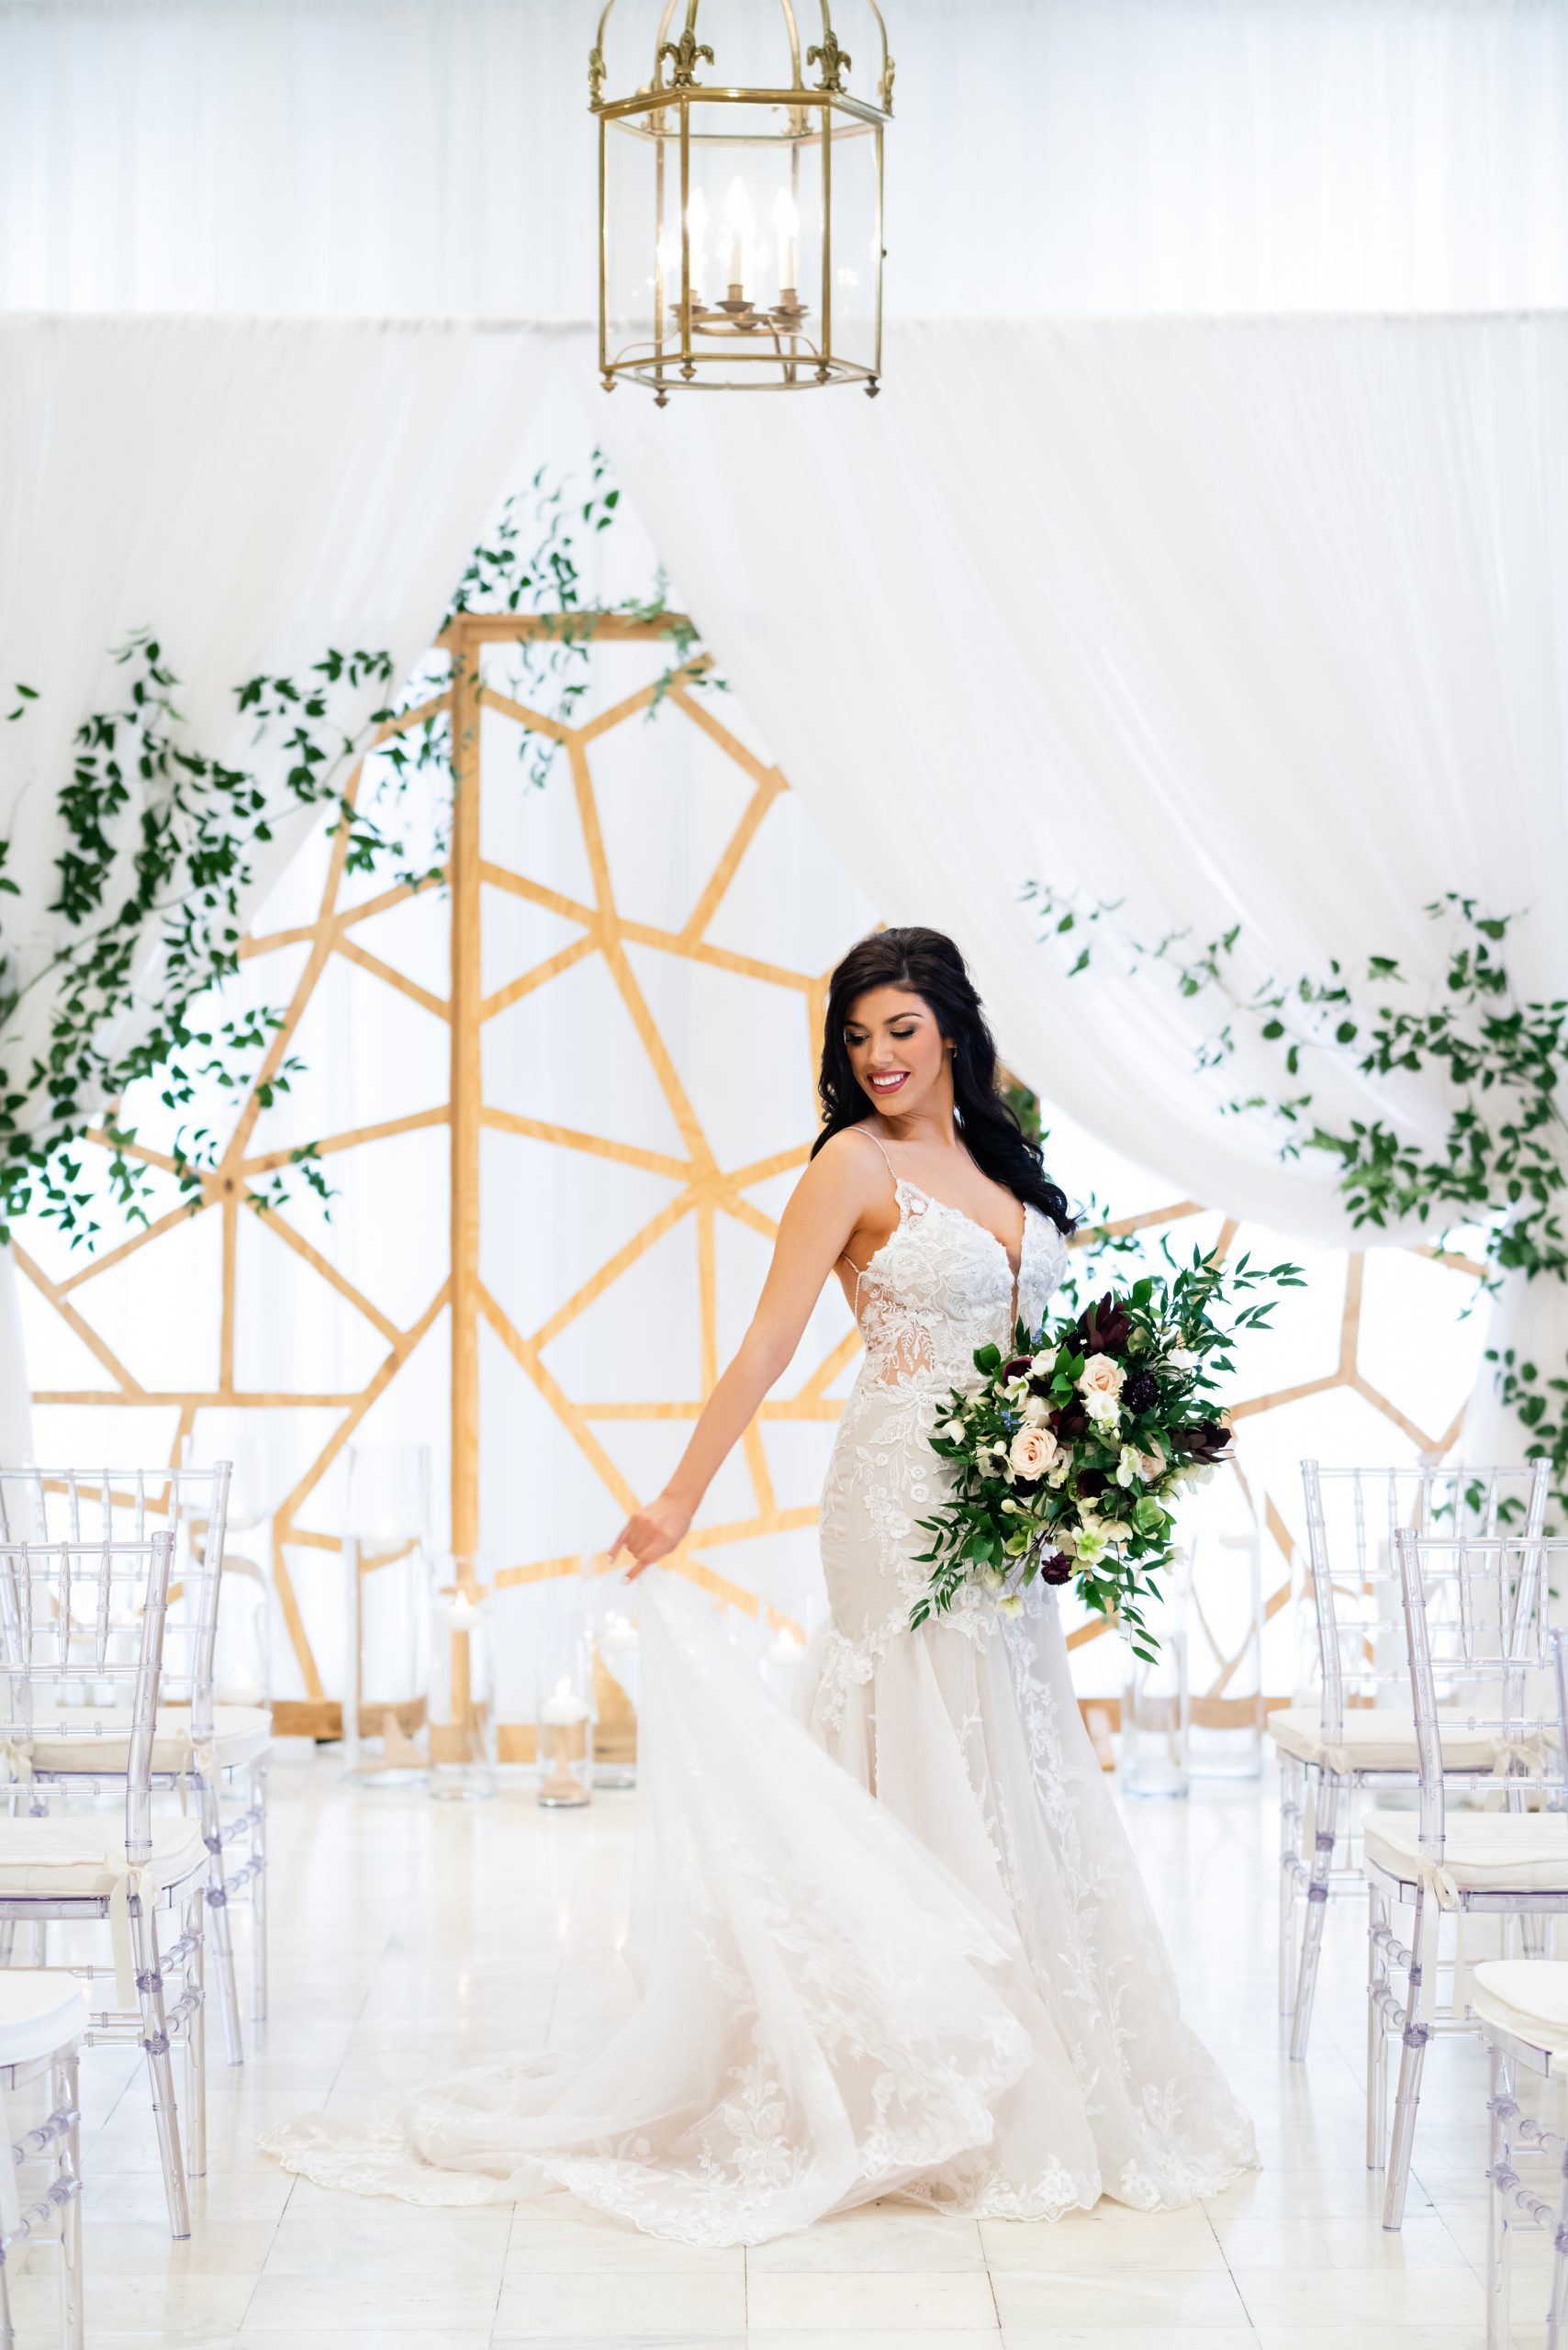 EVERYTHING YOU NEED TO KNOW ABOUT SPECIALTY EVENT RENTALS